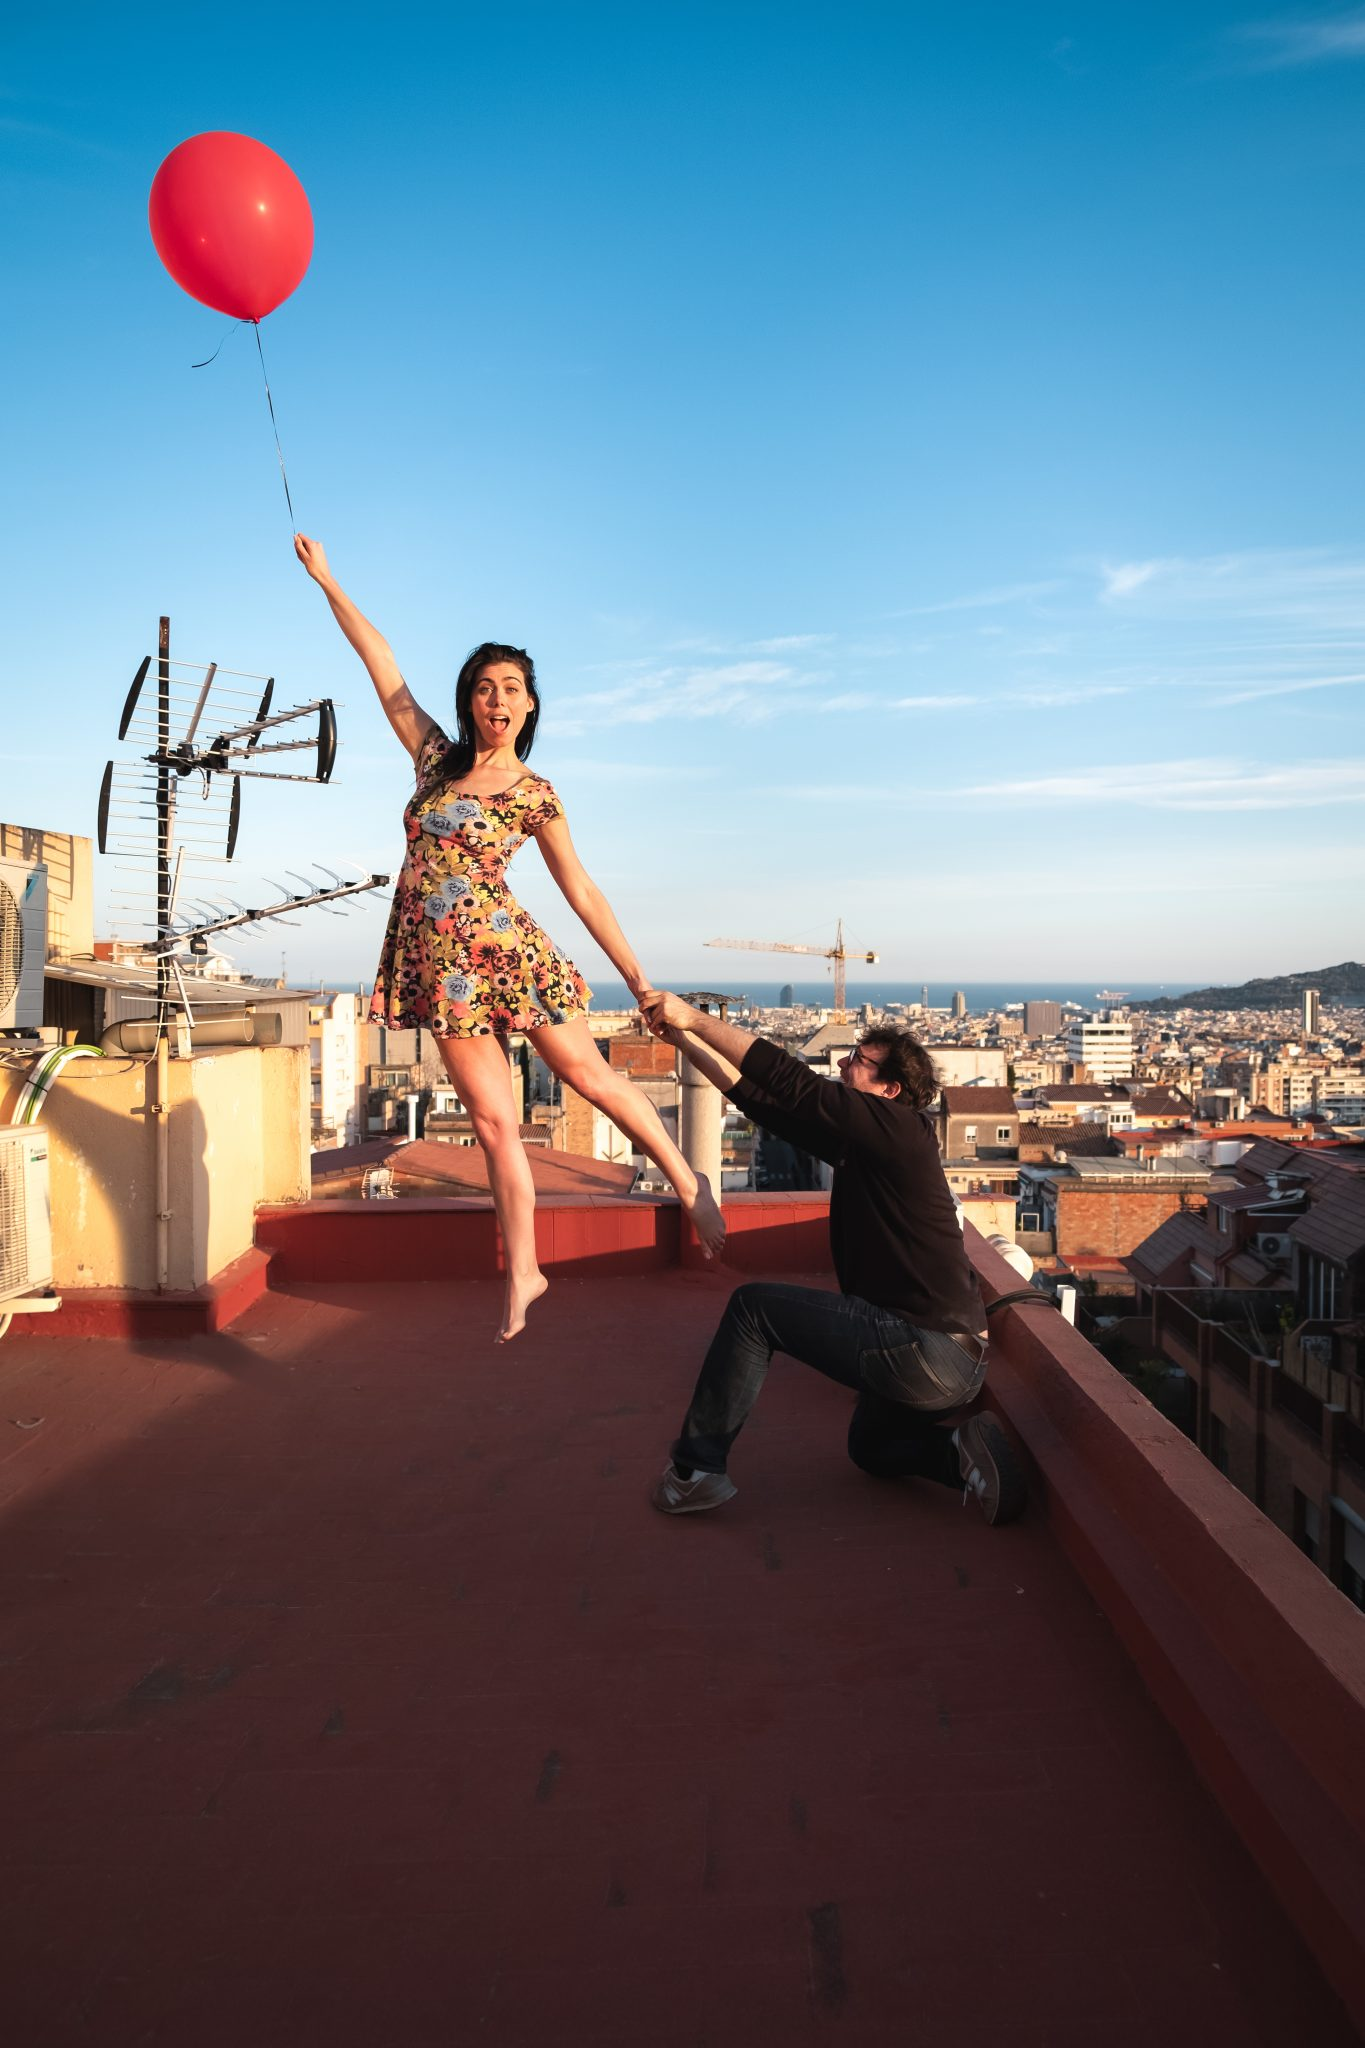 Lemonbahaya and Jo Kassis posing for creative levitation with red balloon over barcelona photo by Jo Kassis